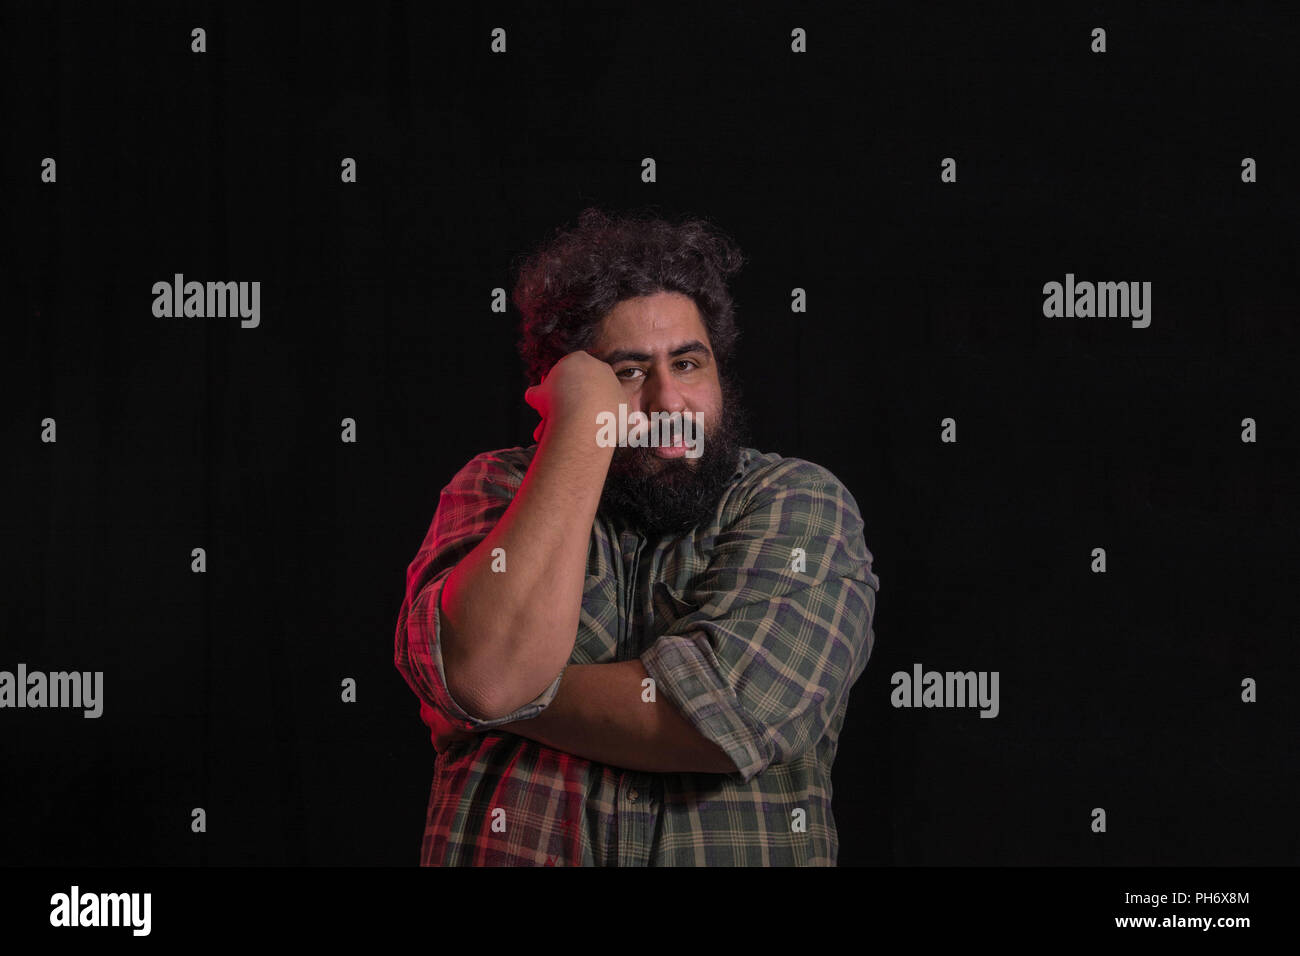 Big man with thick beard in a skeptical pose - Stock Image